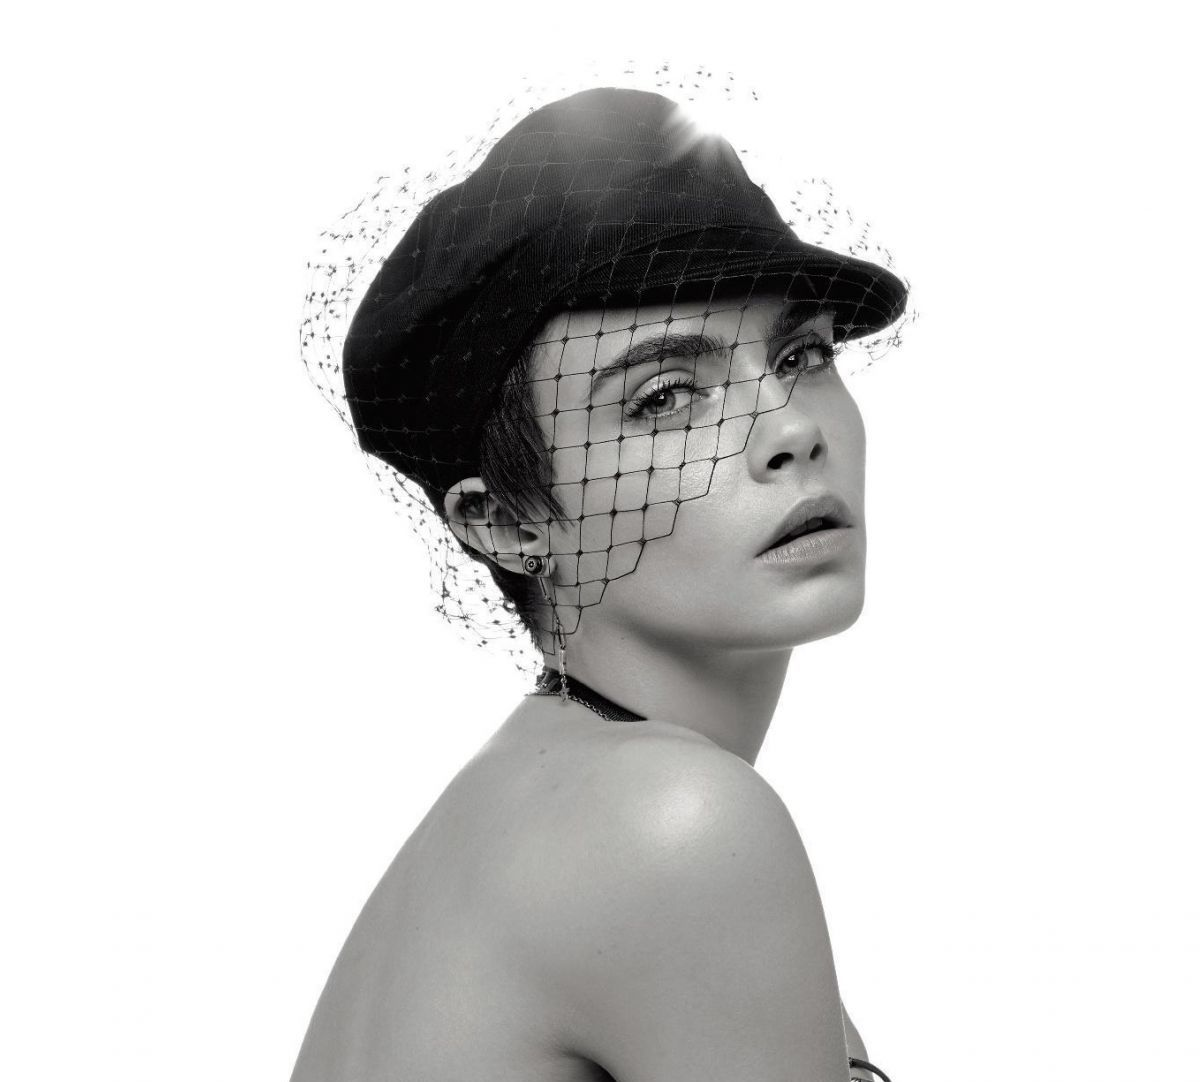 Cara Delevingne In Numero Magazine 190 February 2018 issue